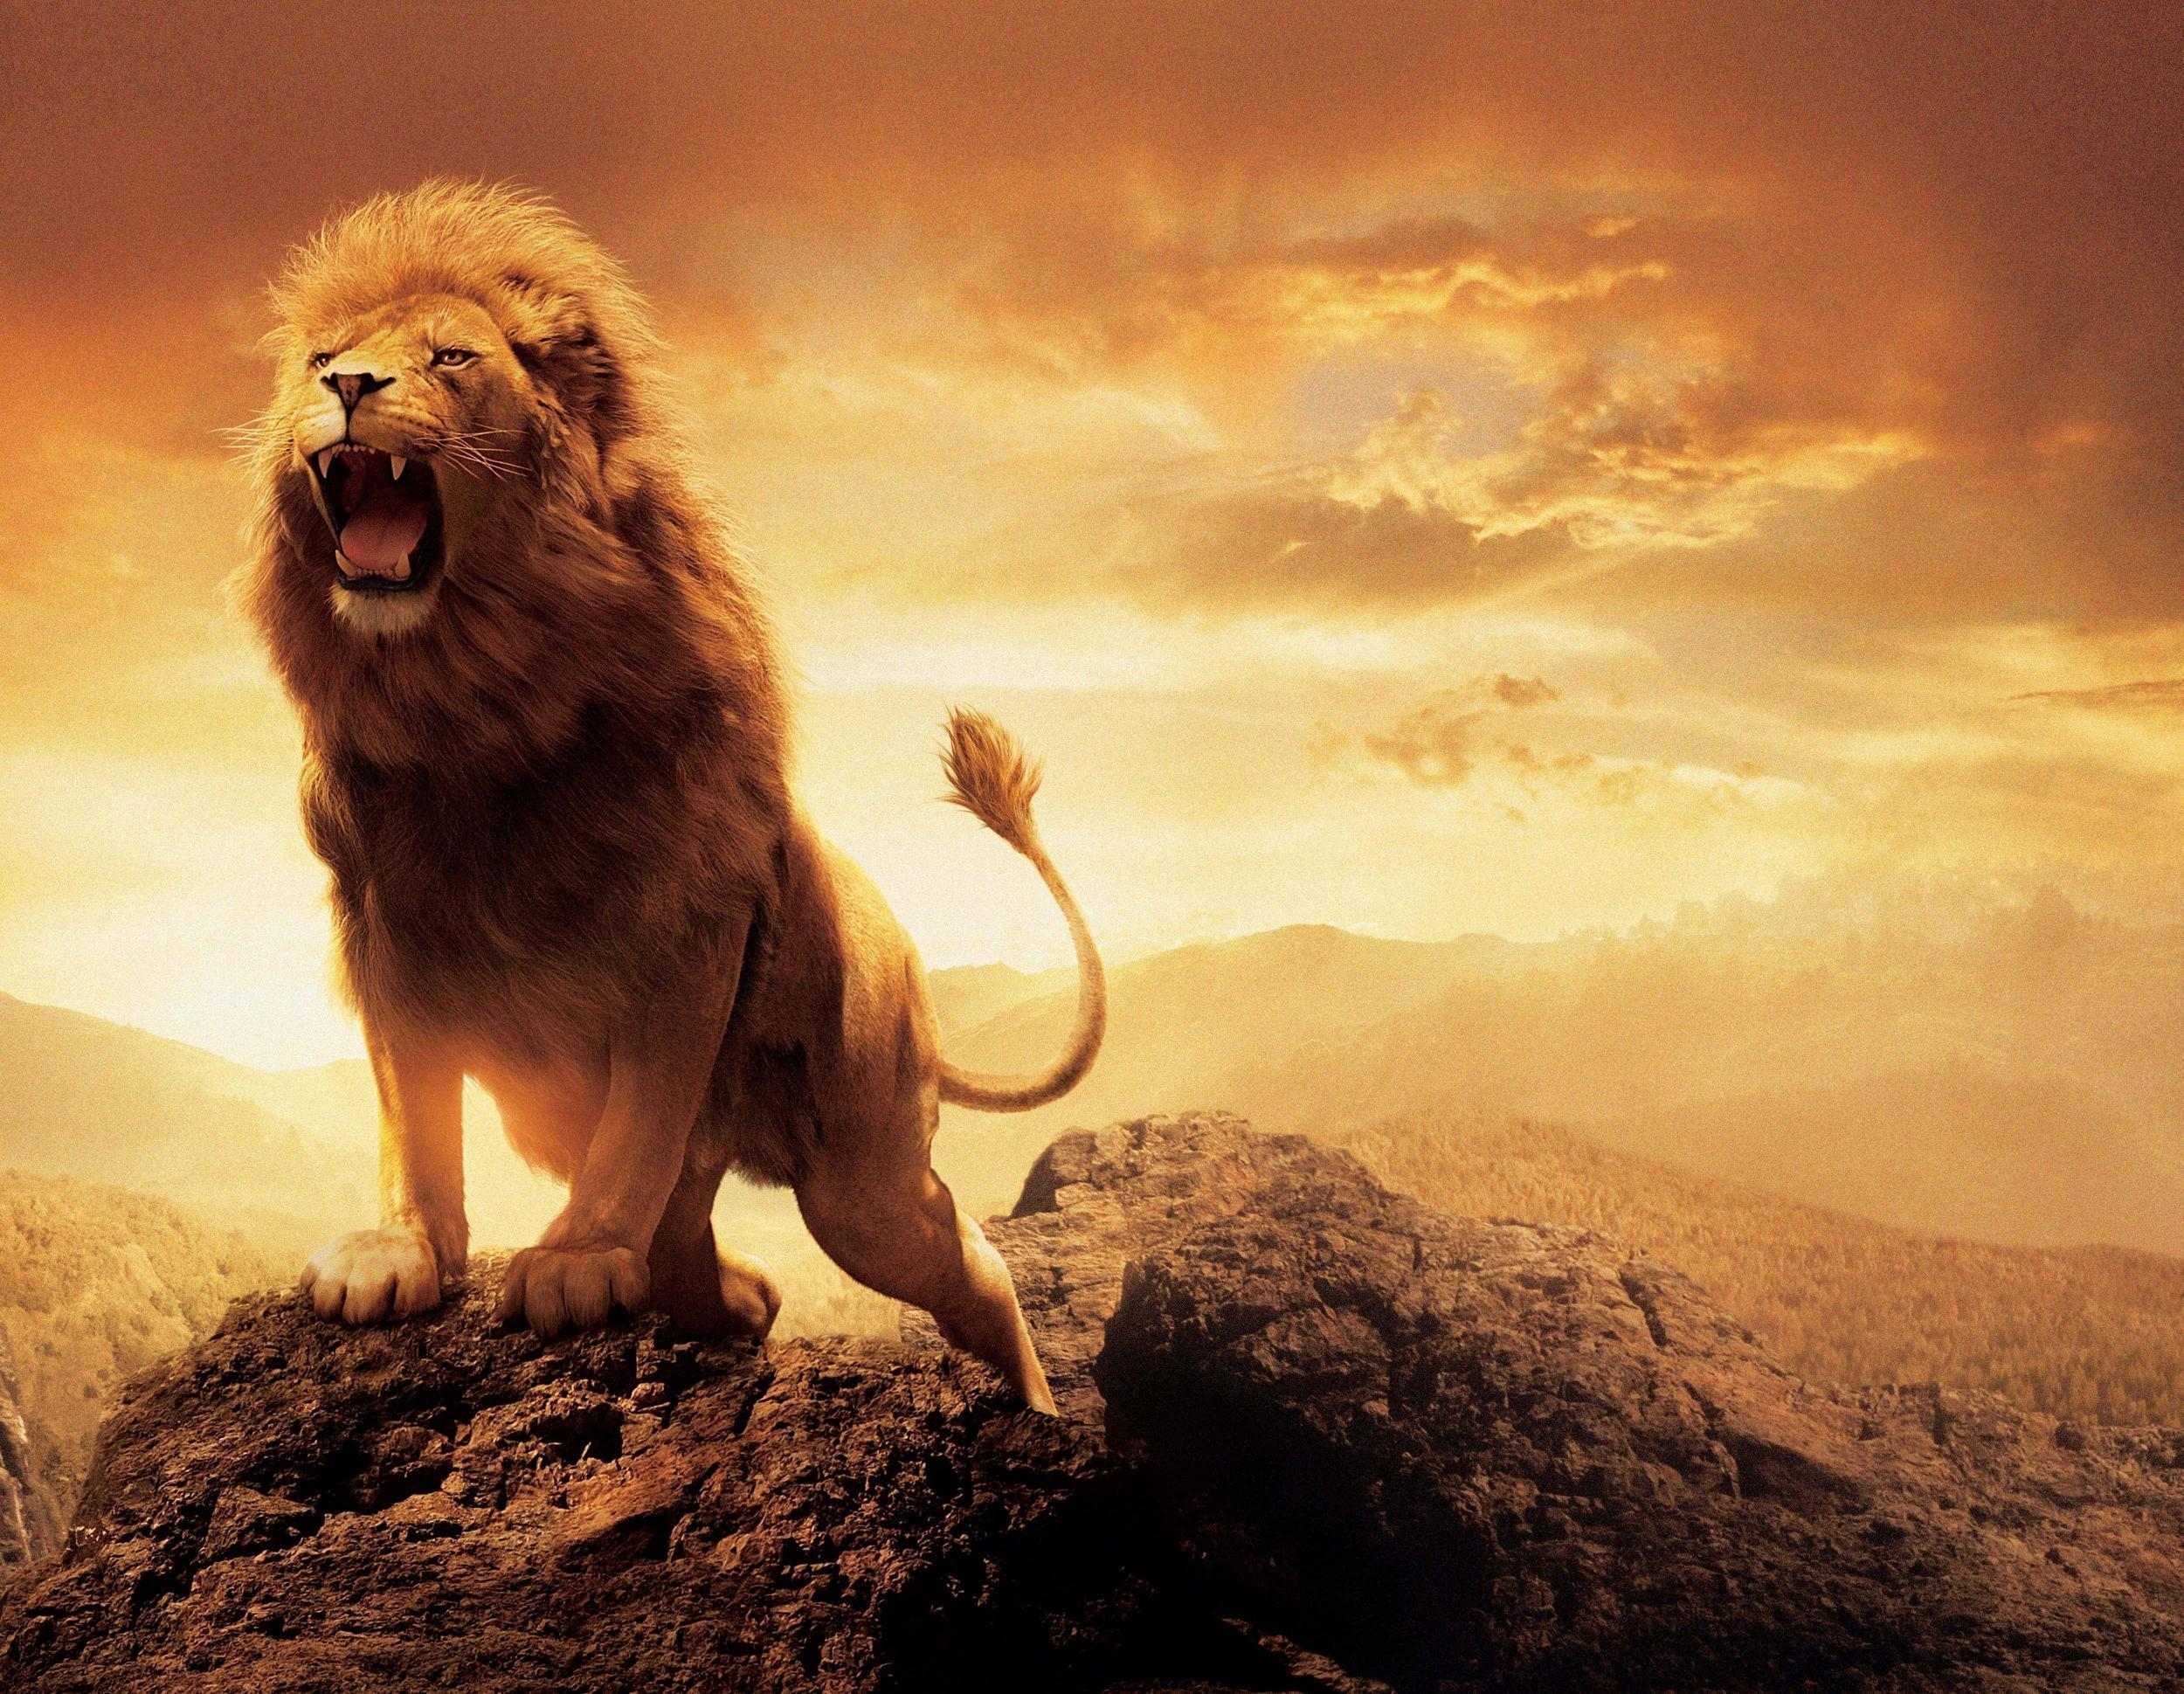 Narnia Aslan Wallpapers - Wallpaper Cave